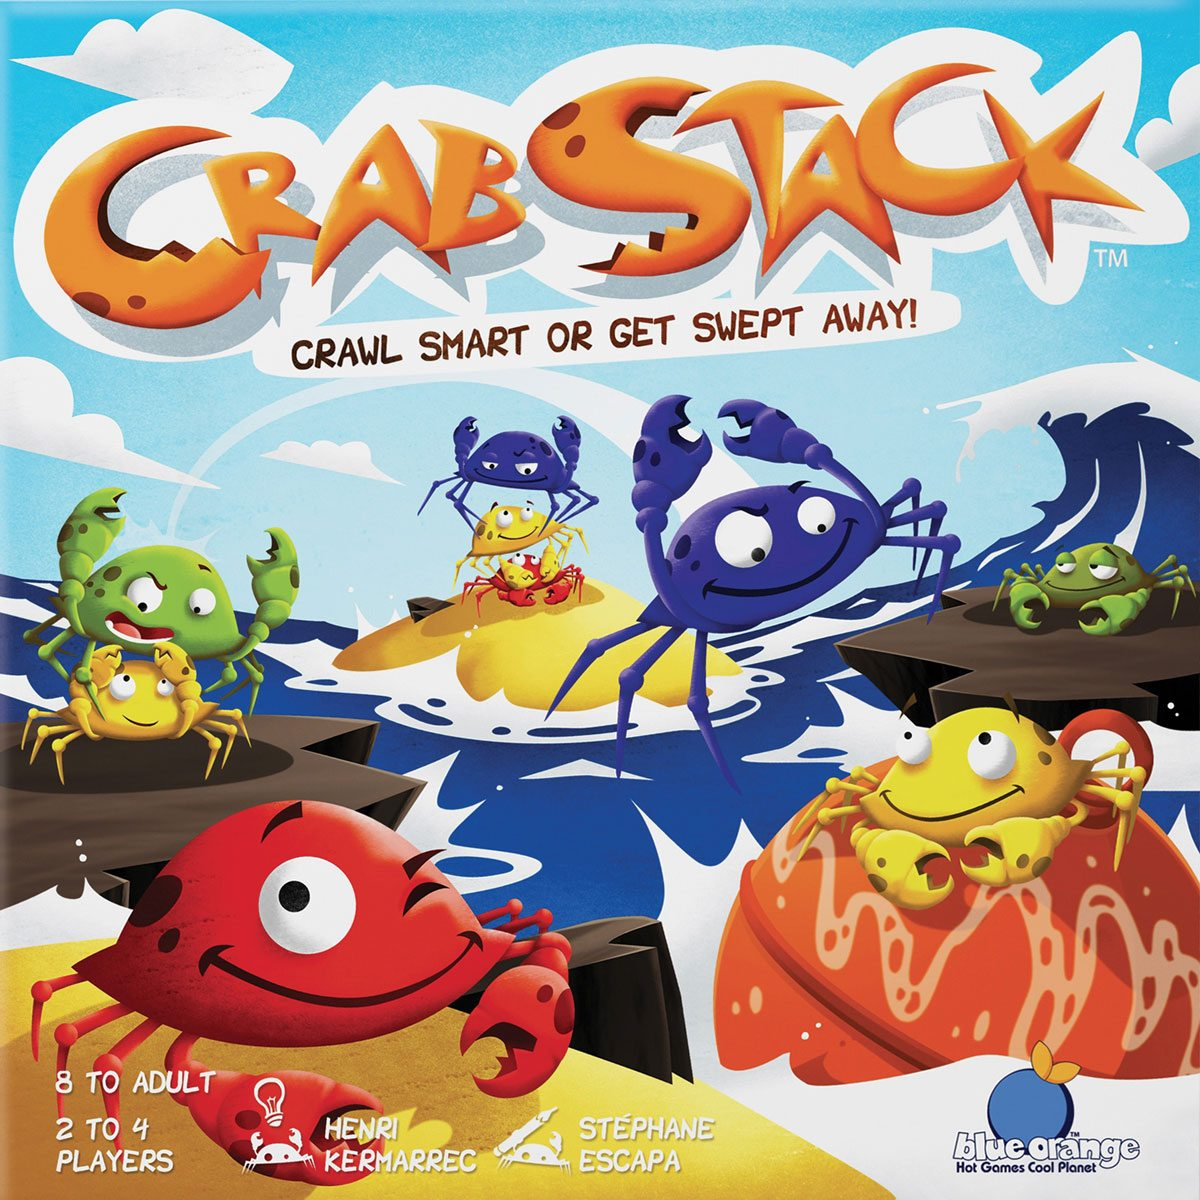 Crab Stack cover